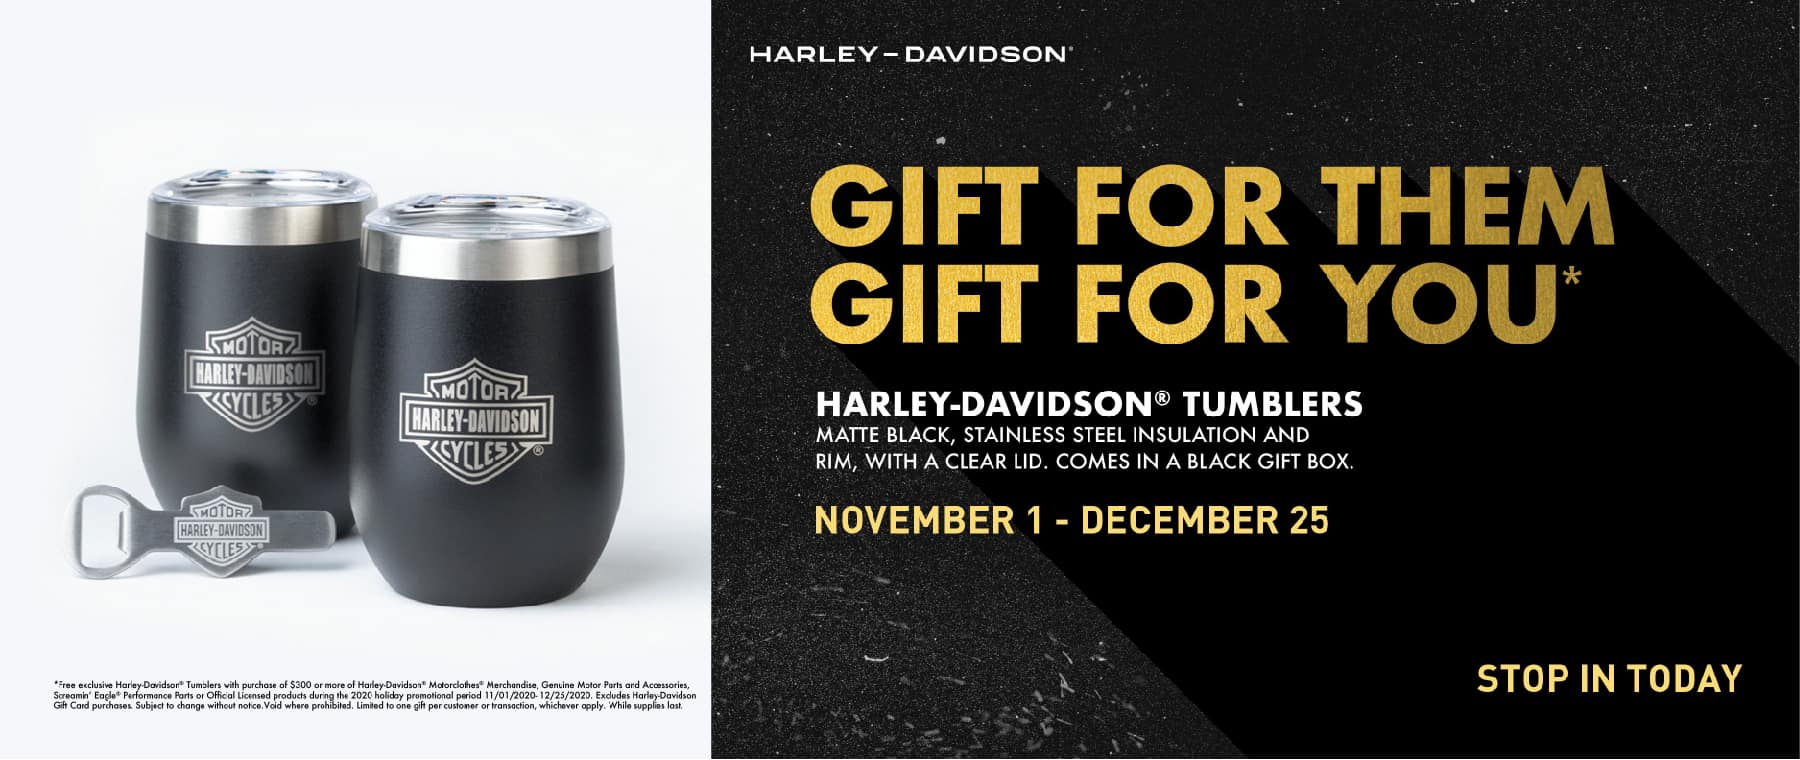 Harley-Davidson Gift with Purchase!